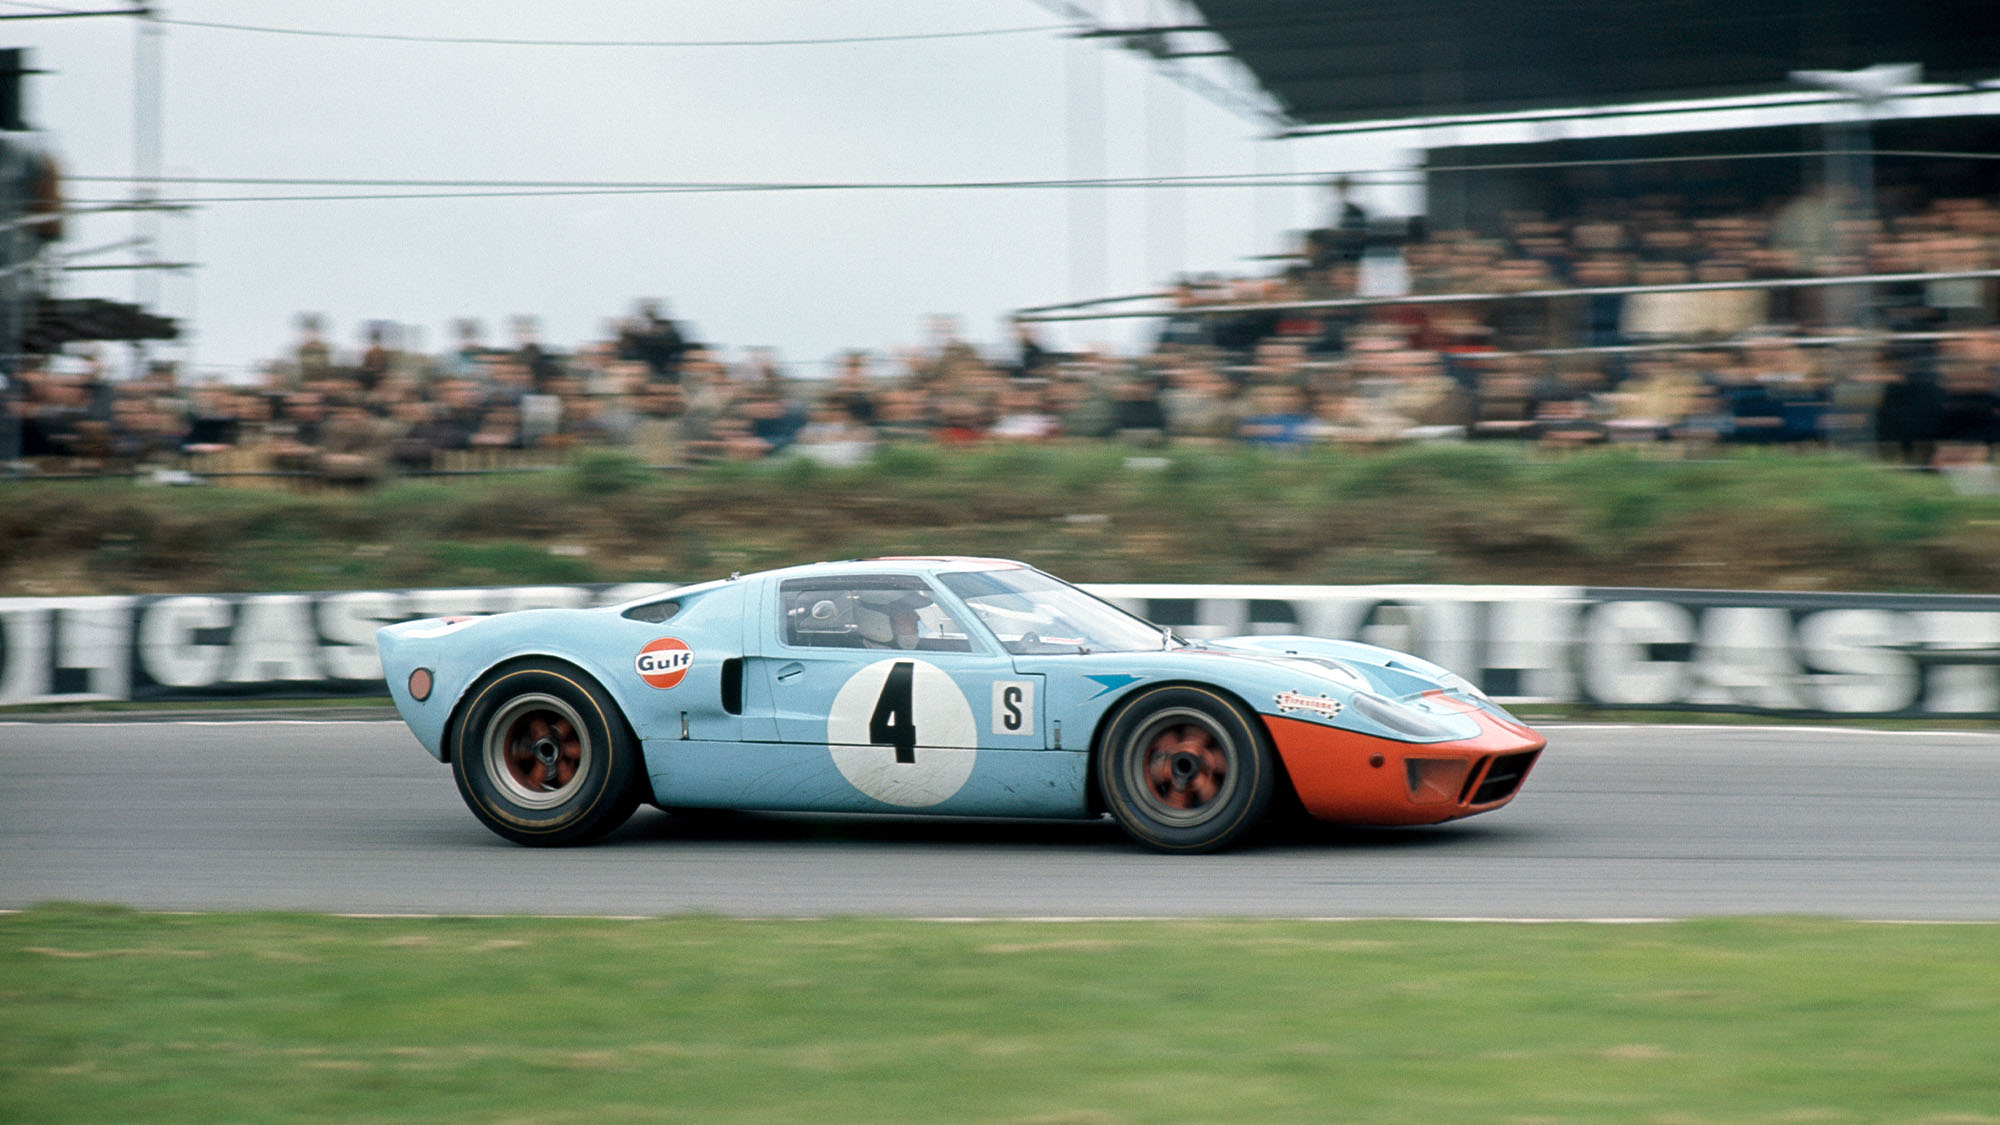 Brian Redman of Great Britain and Jacky Ickx of Belgium driving the Ford GT40 during the The Brands Hatch Six Hours, BOAC International 500 World Championship Sports Car Race at the Brands Hatch Circuit in Longfield, England on 7th April, 1968. (Photo by Ed Lacey/Popperfoto via Getty Images/Getty Images)